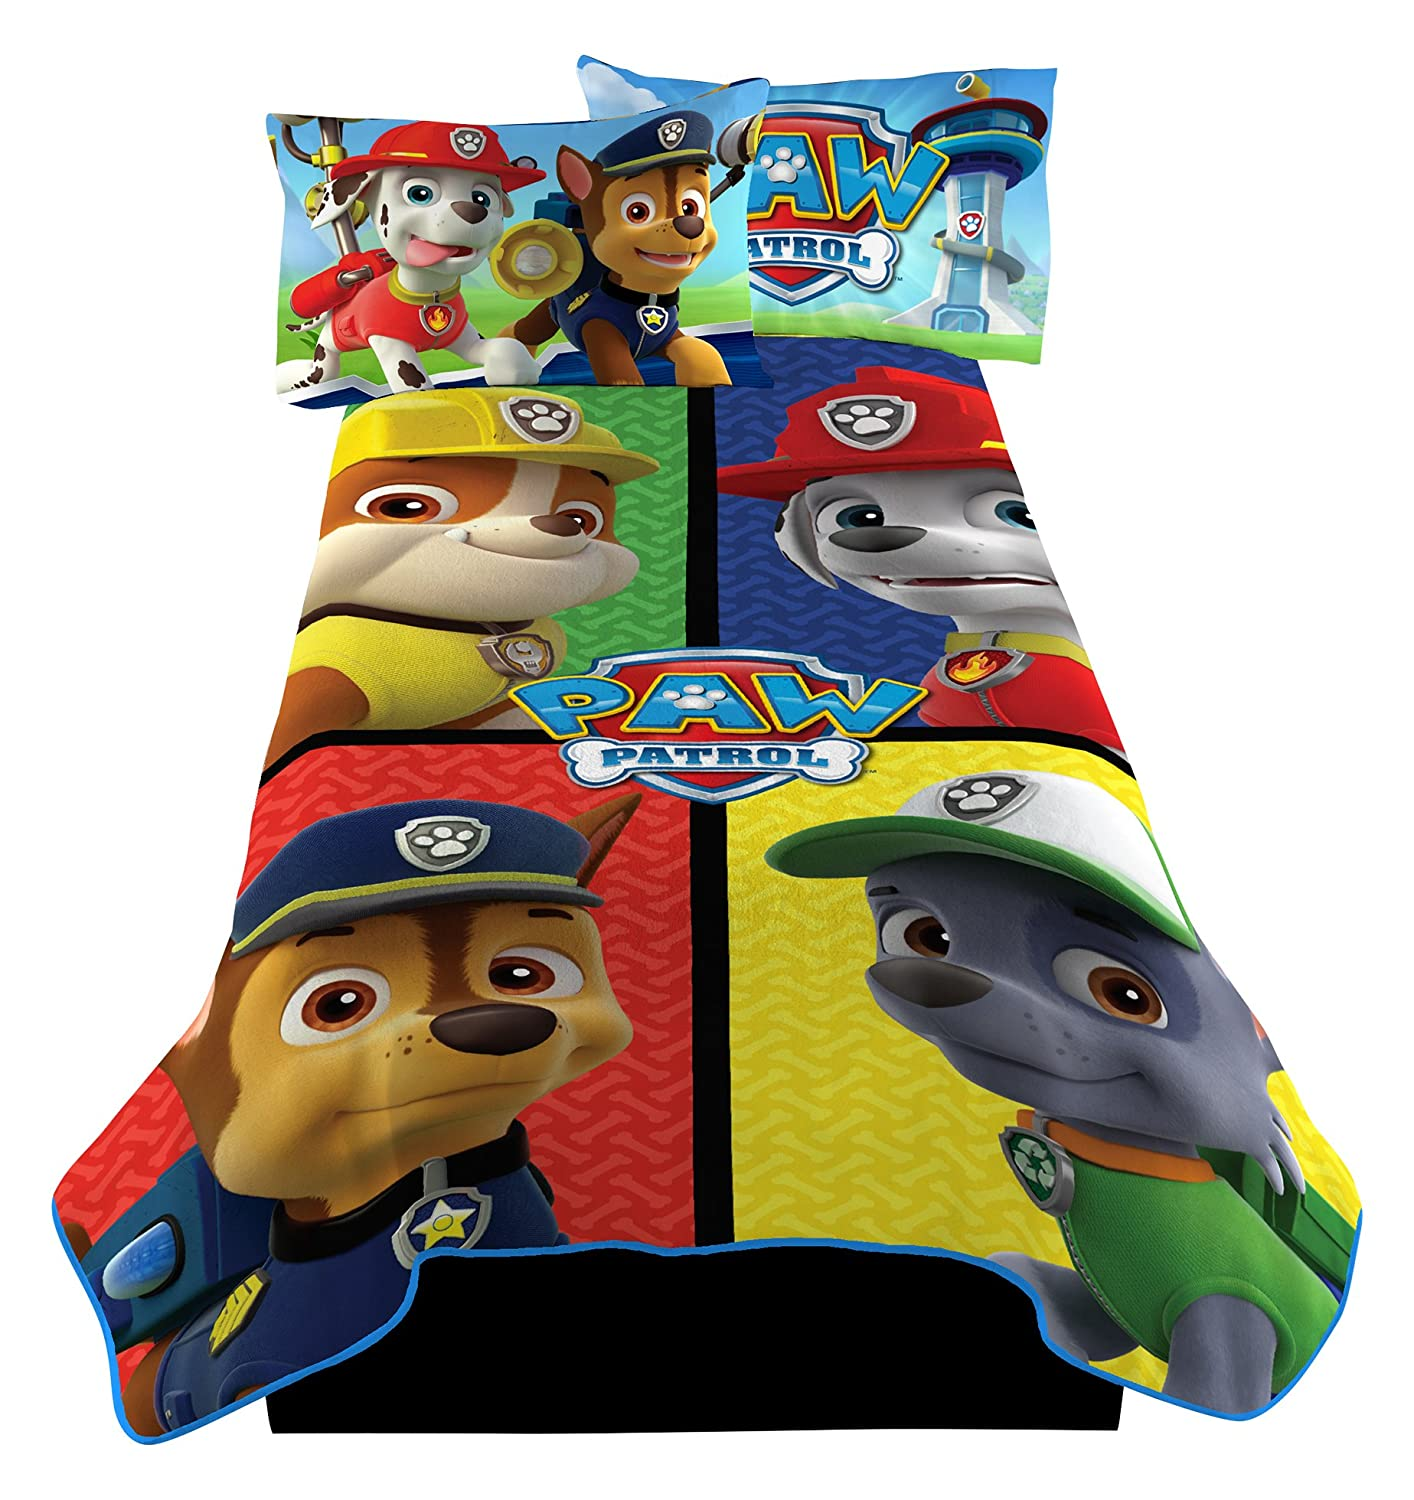 Nickelodeon PAW Patrol Puppy Rescue Microraschel Blanket Franco Manufacturing A4415C